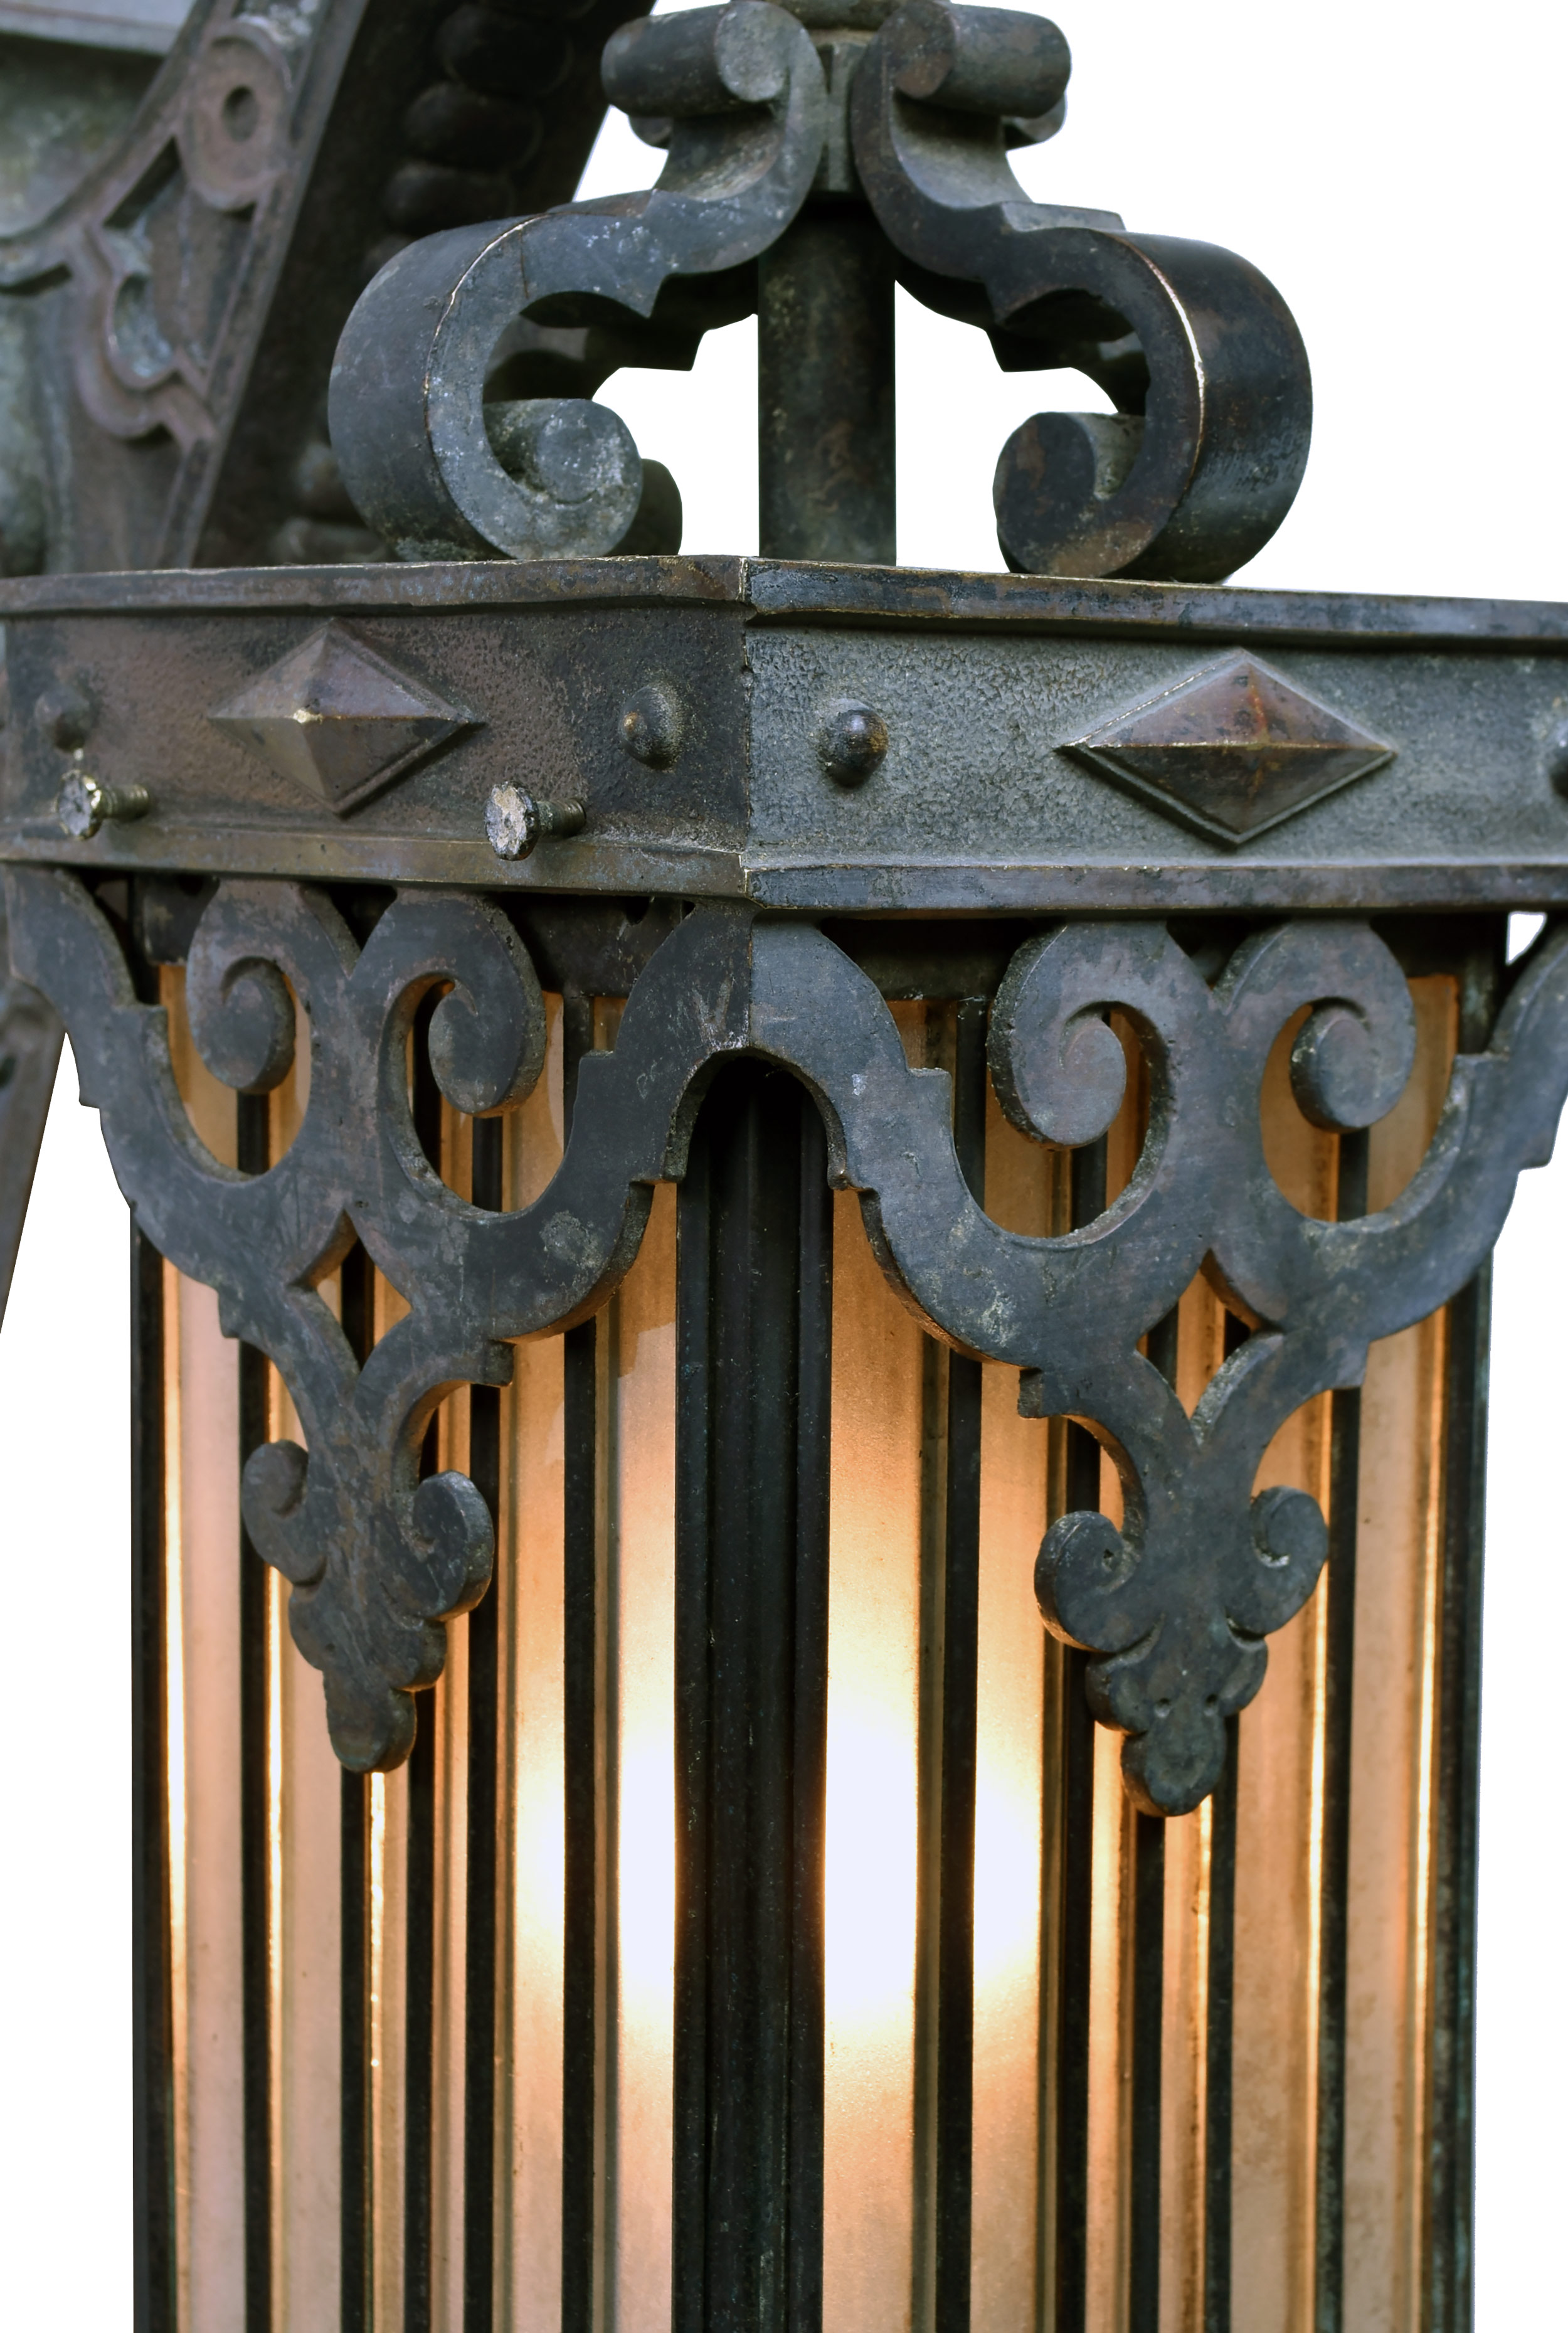 47236-cast-bronze-sconce-with-leaded-glass-shade-detail.jpg